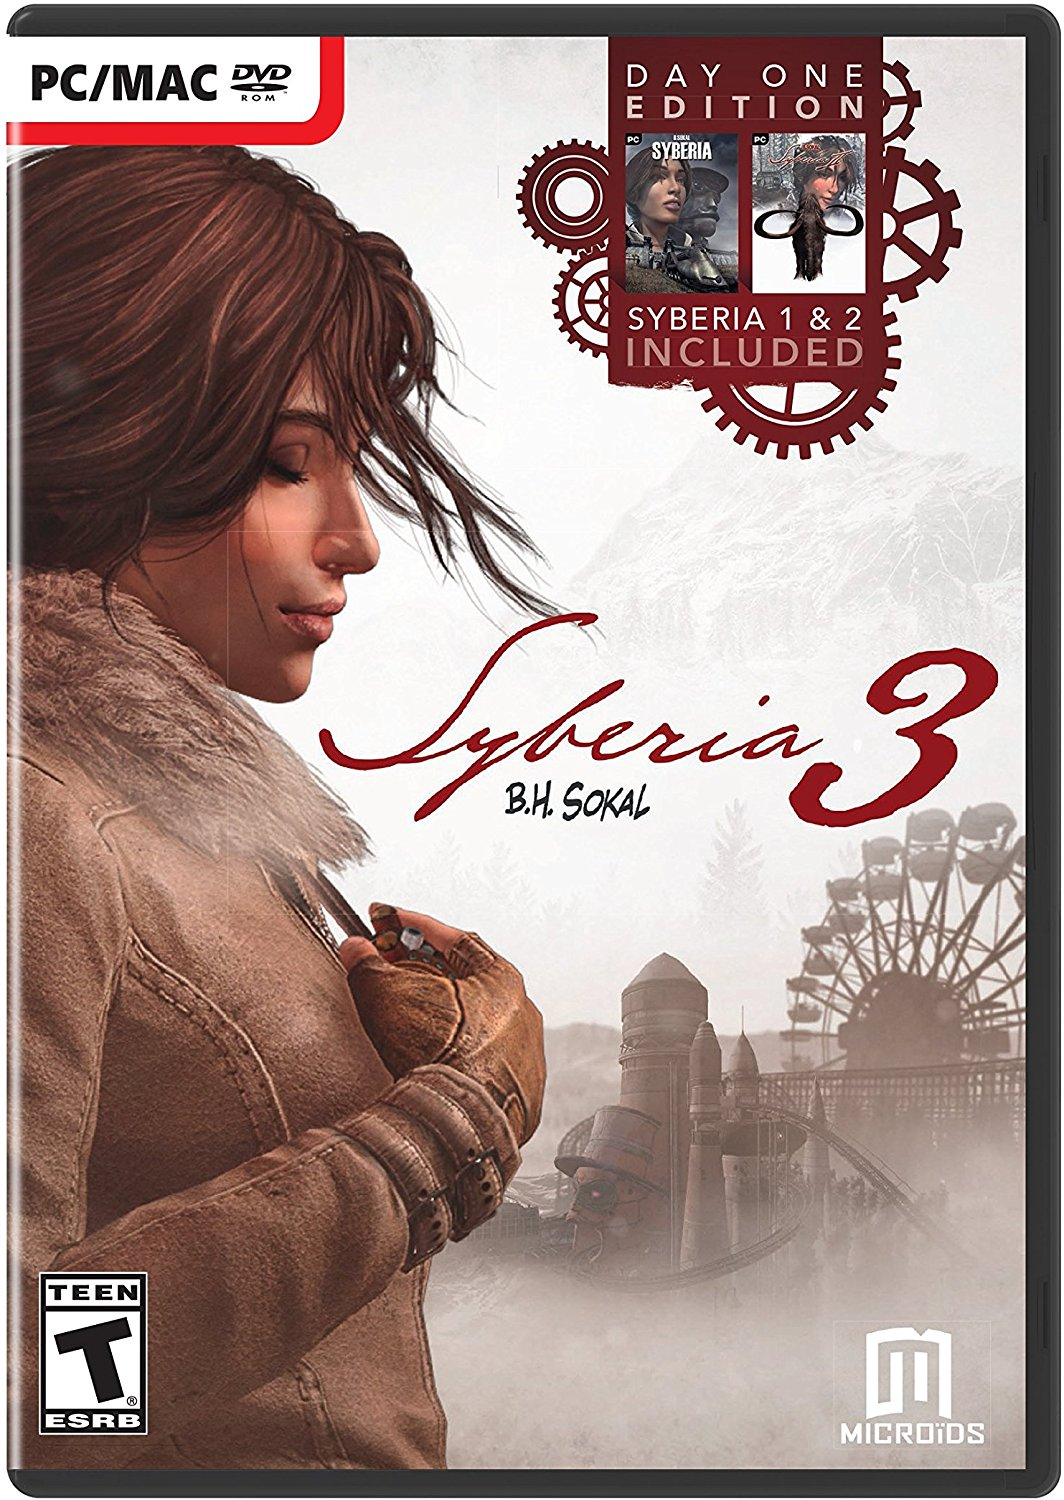 Poster for Syberia 3